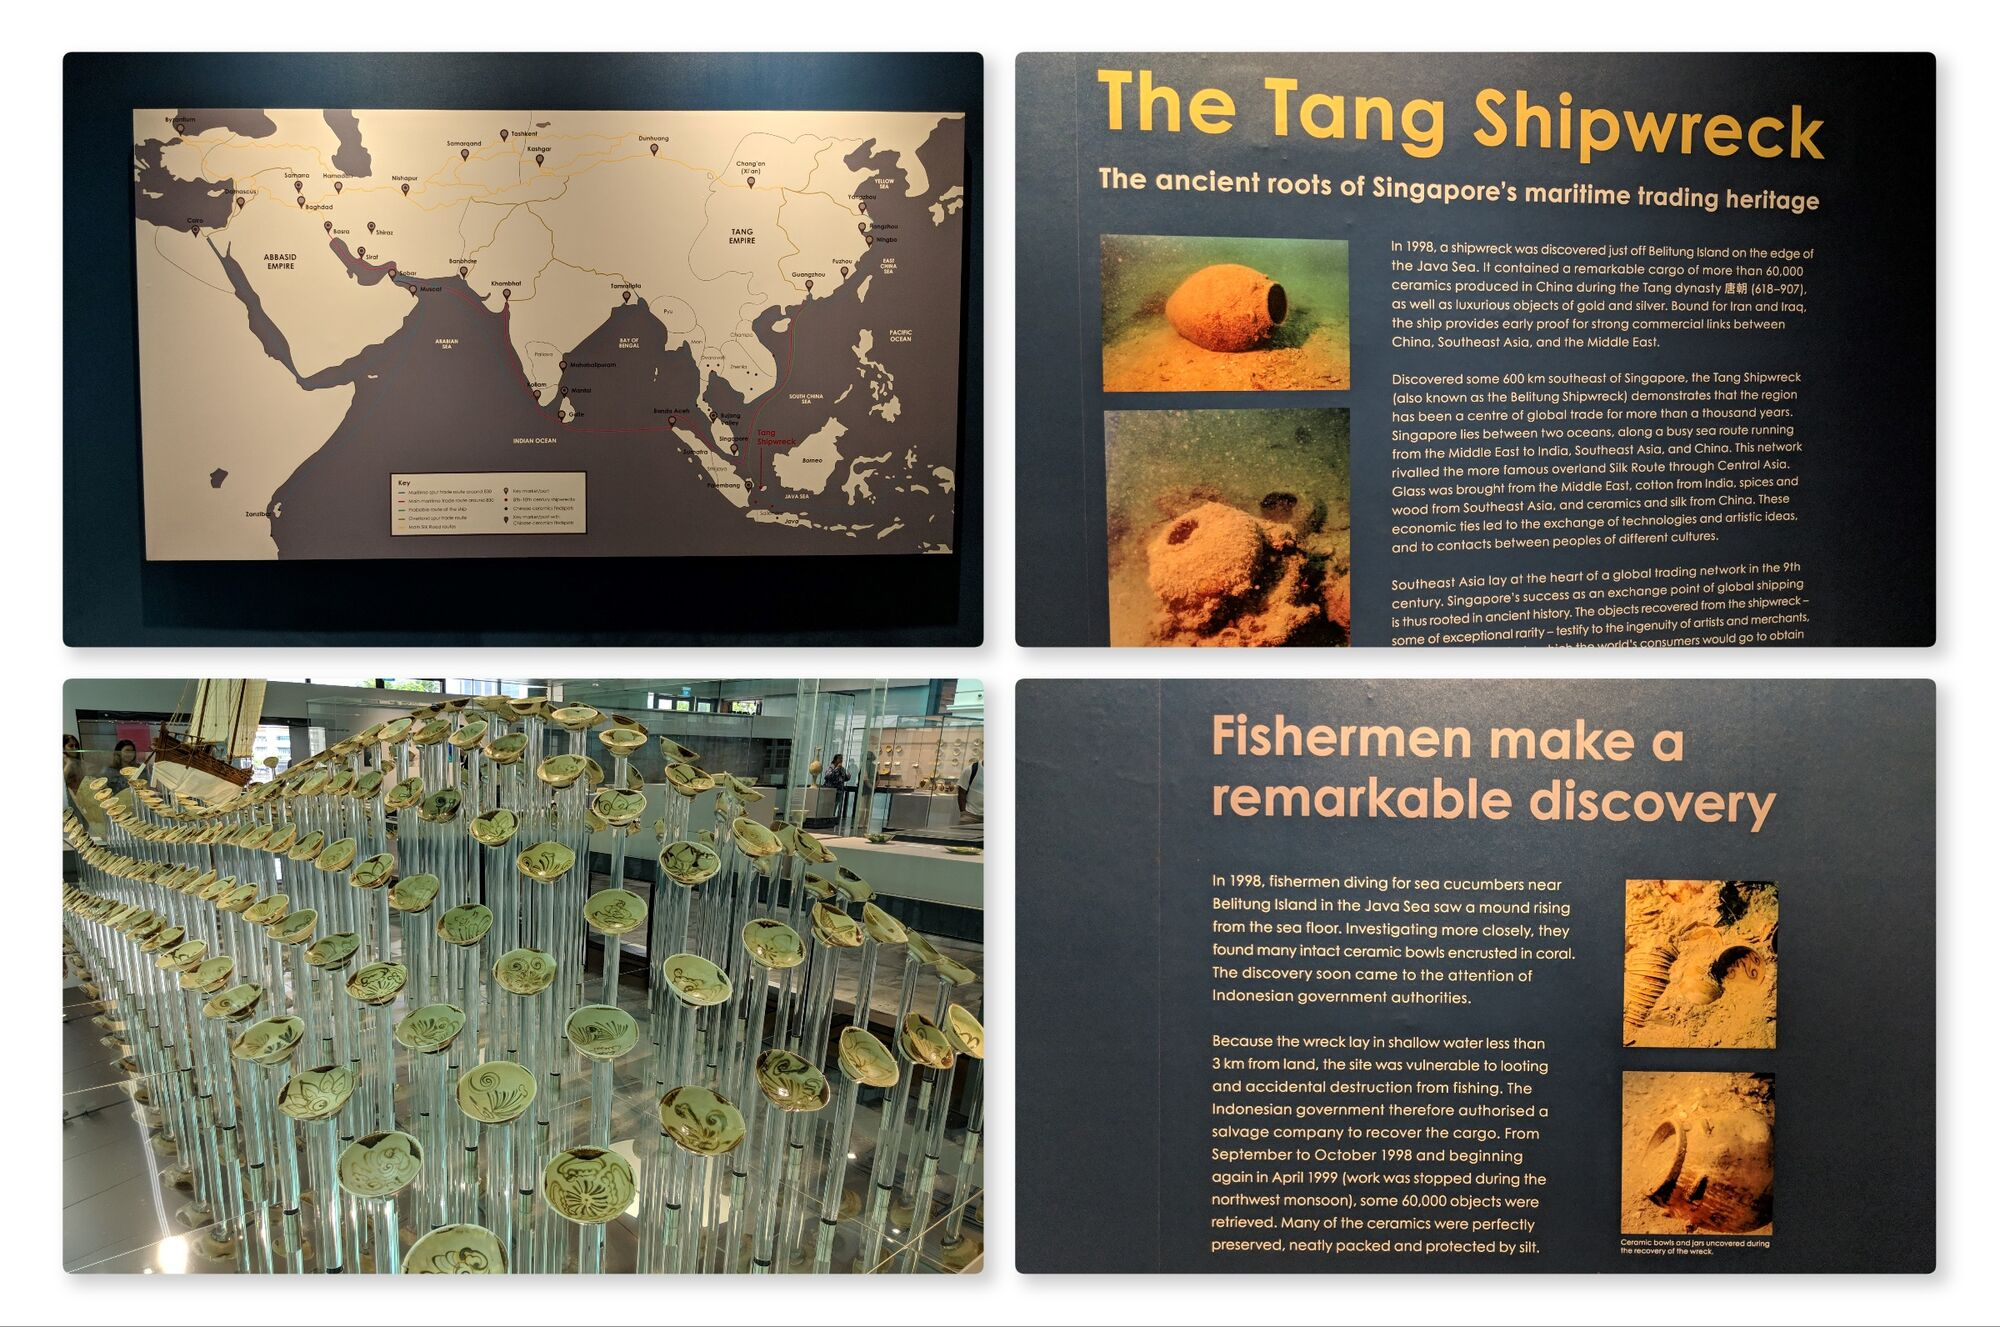 The Tang Shipwreck. The ceramics had been produced in China during the Tang dynasty (618-907).